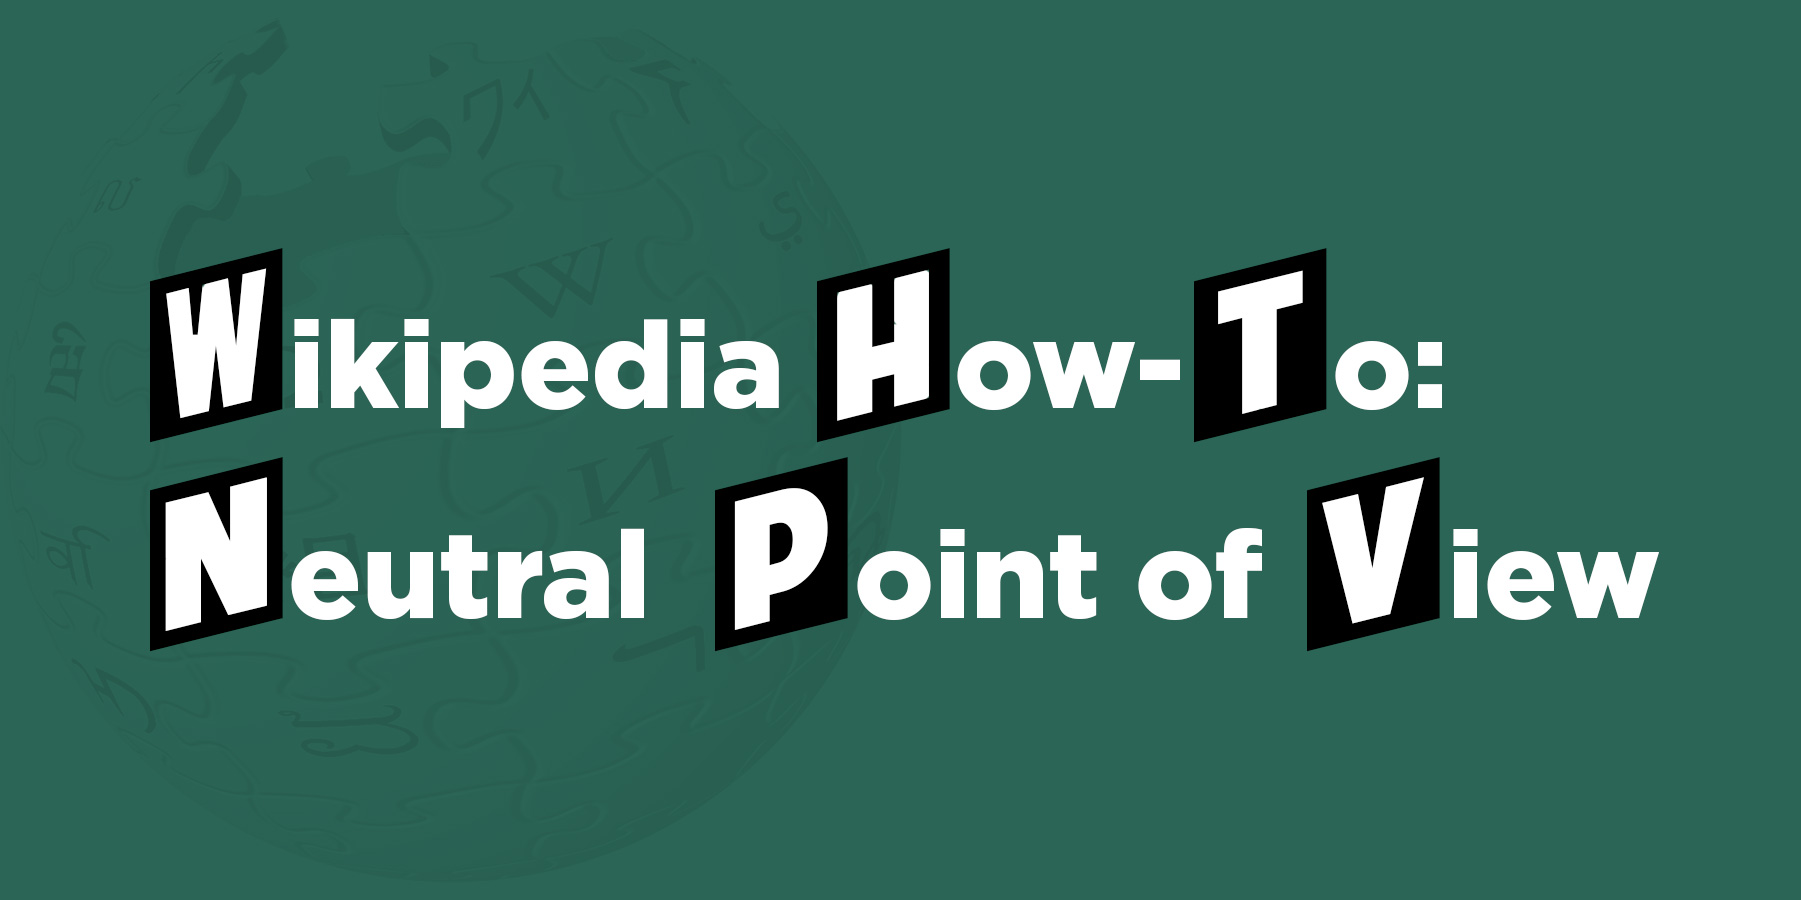 Wikipedia How-To: Neutral Point of View